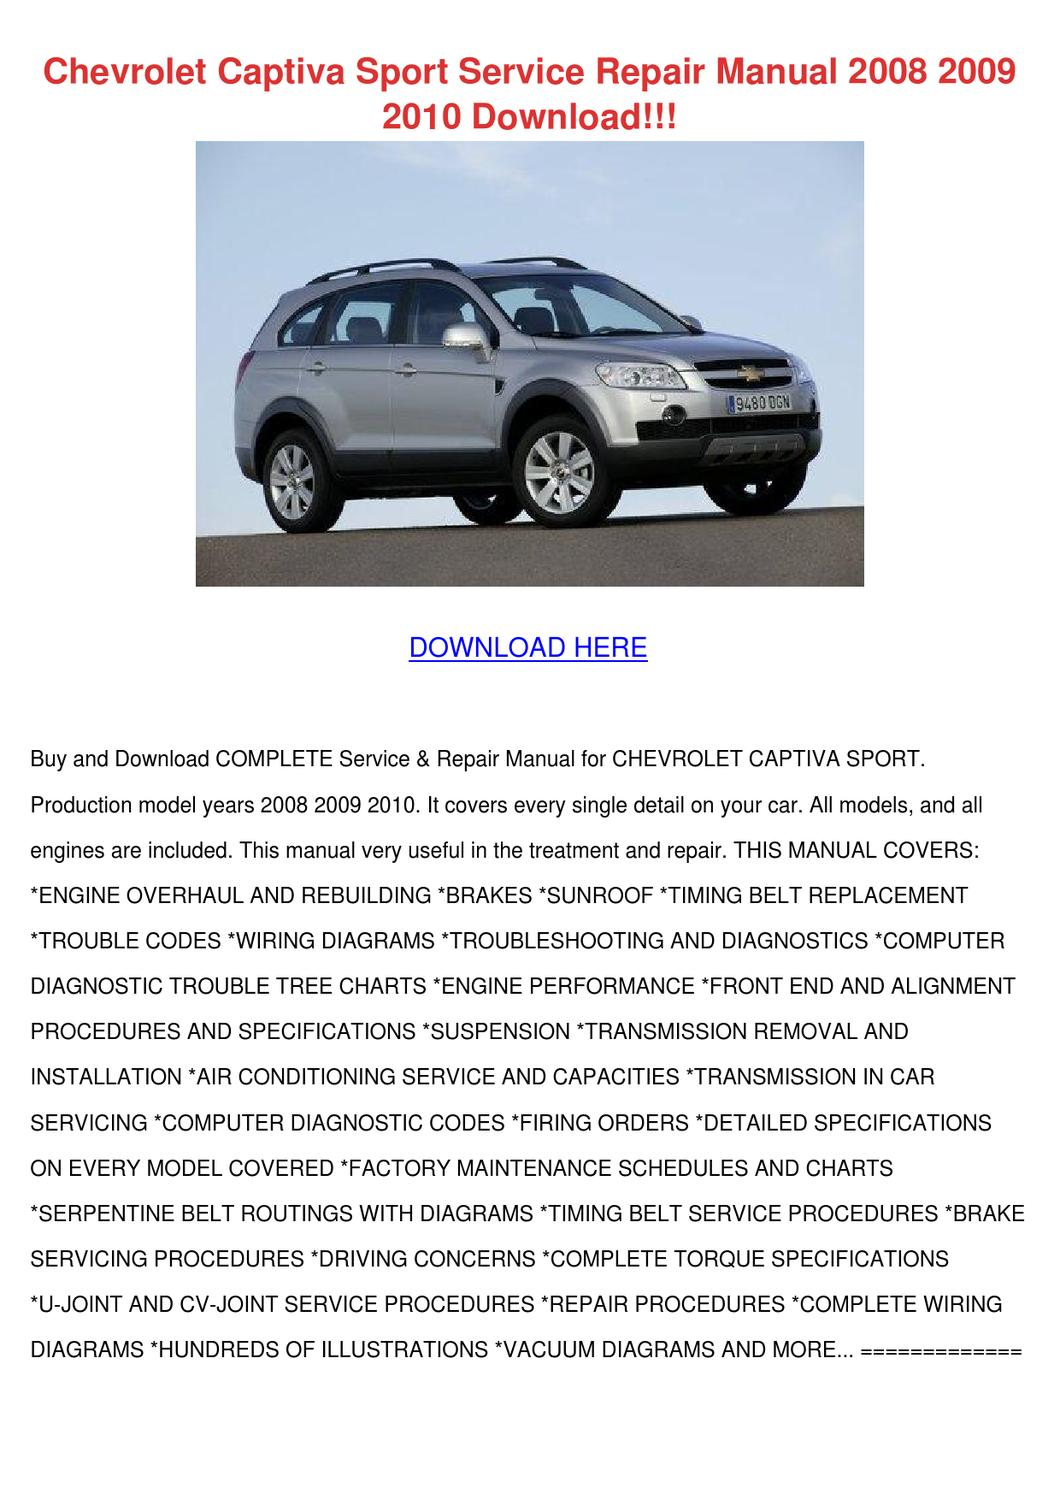 Chevrolet Captiva Sport Service Repair Manual By Heidigarris Issuu Wiring Diagrams Manuals